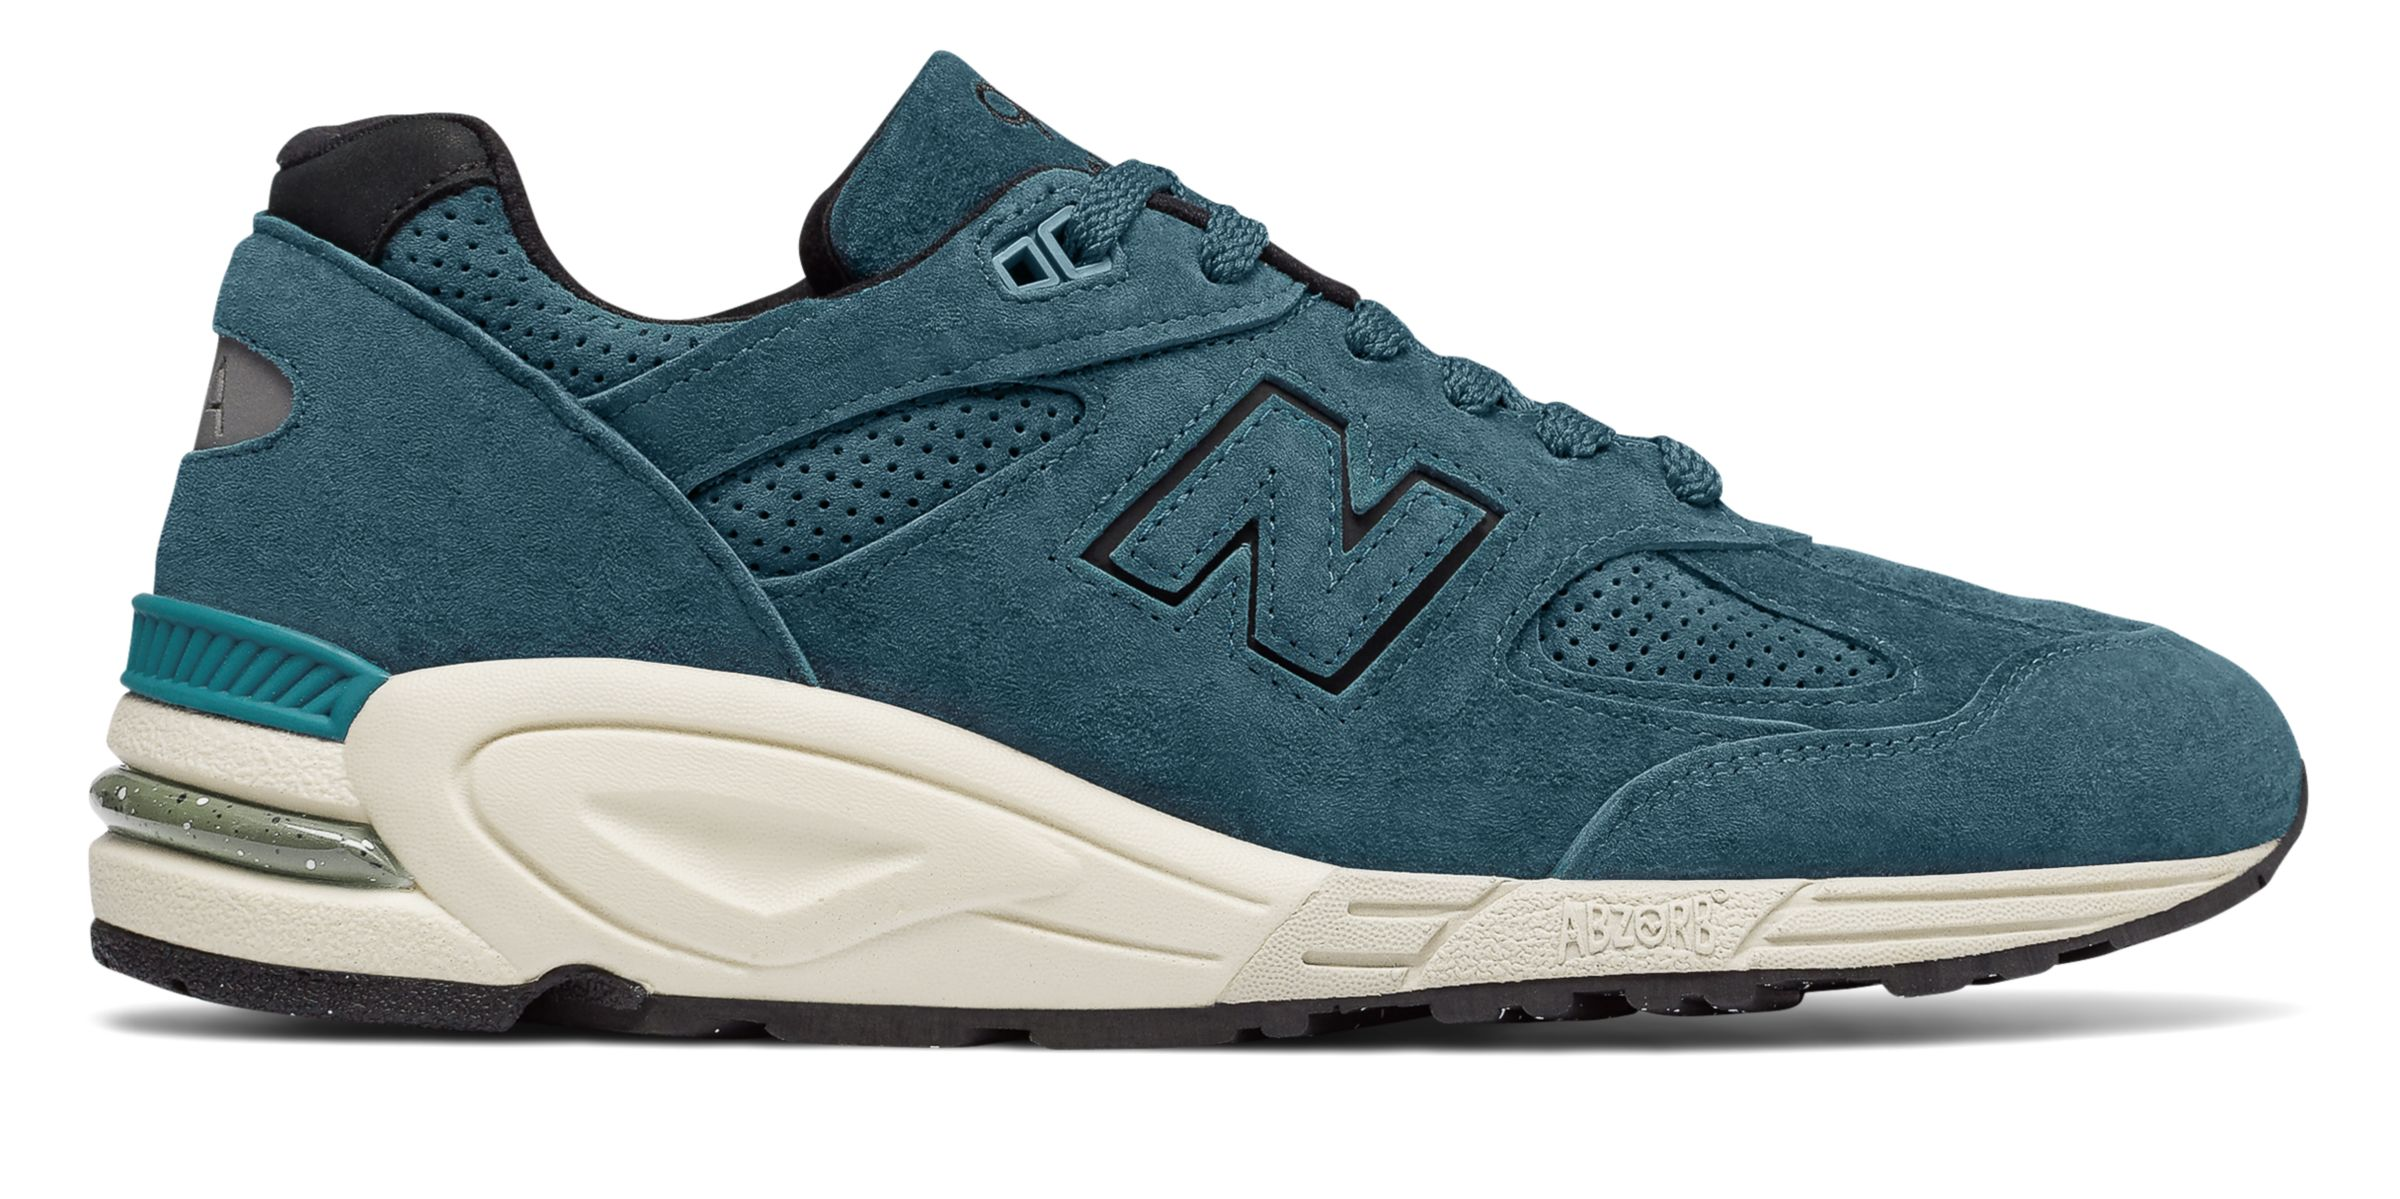 New Balance 990v2 Made in US Color Spectrum Men's Made in USA Shoes - (M990-V2CS)